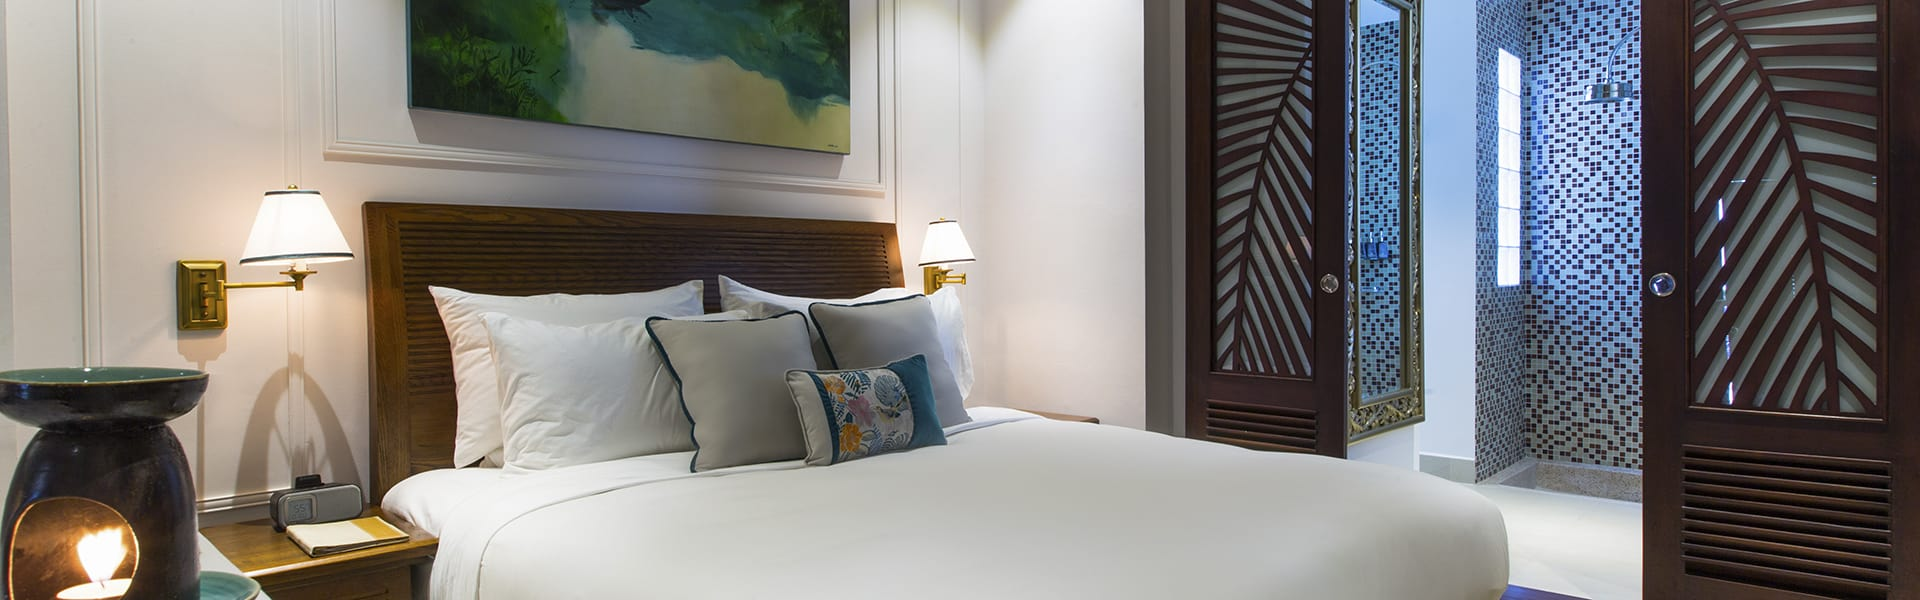 Hoi An Old Town Hotels | Deluxe Rooms at Anantara Hoi An Resort